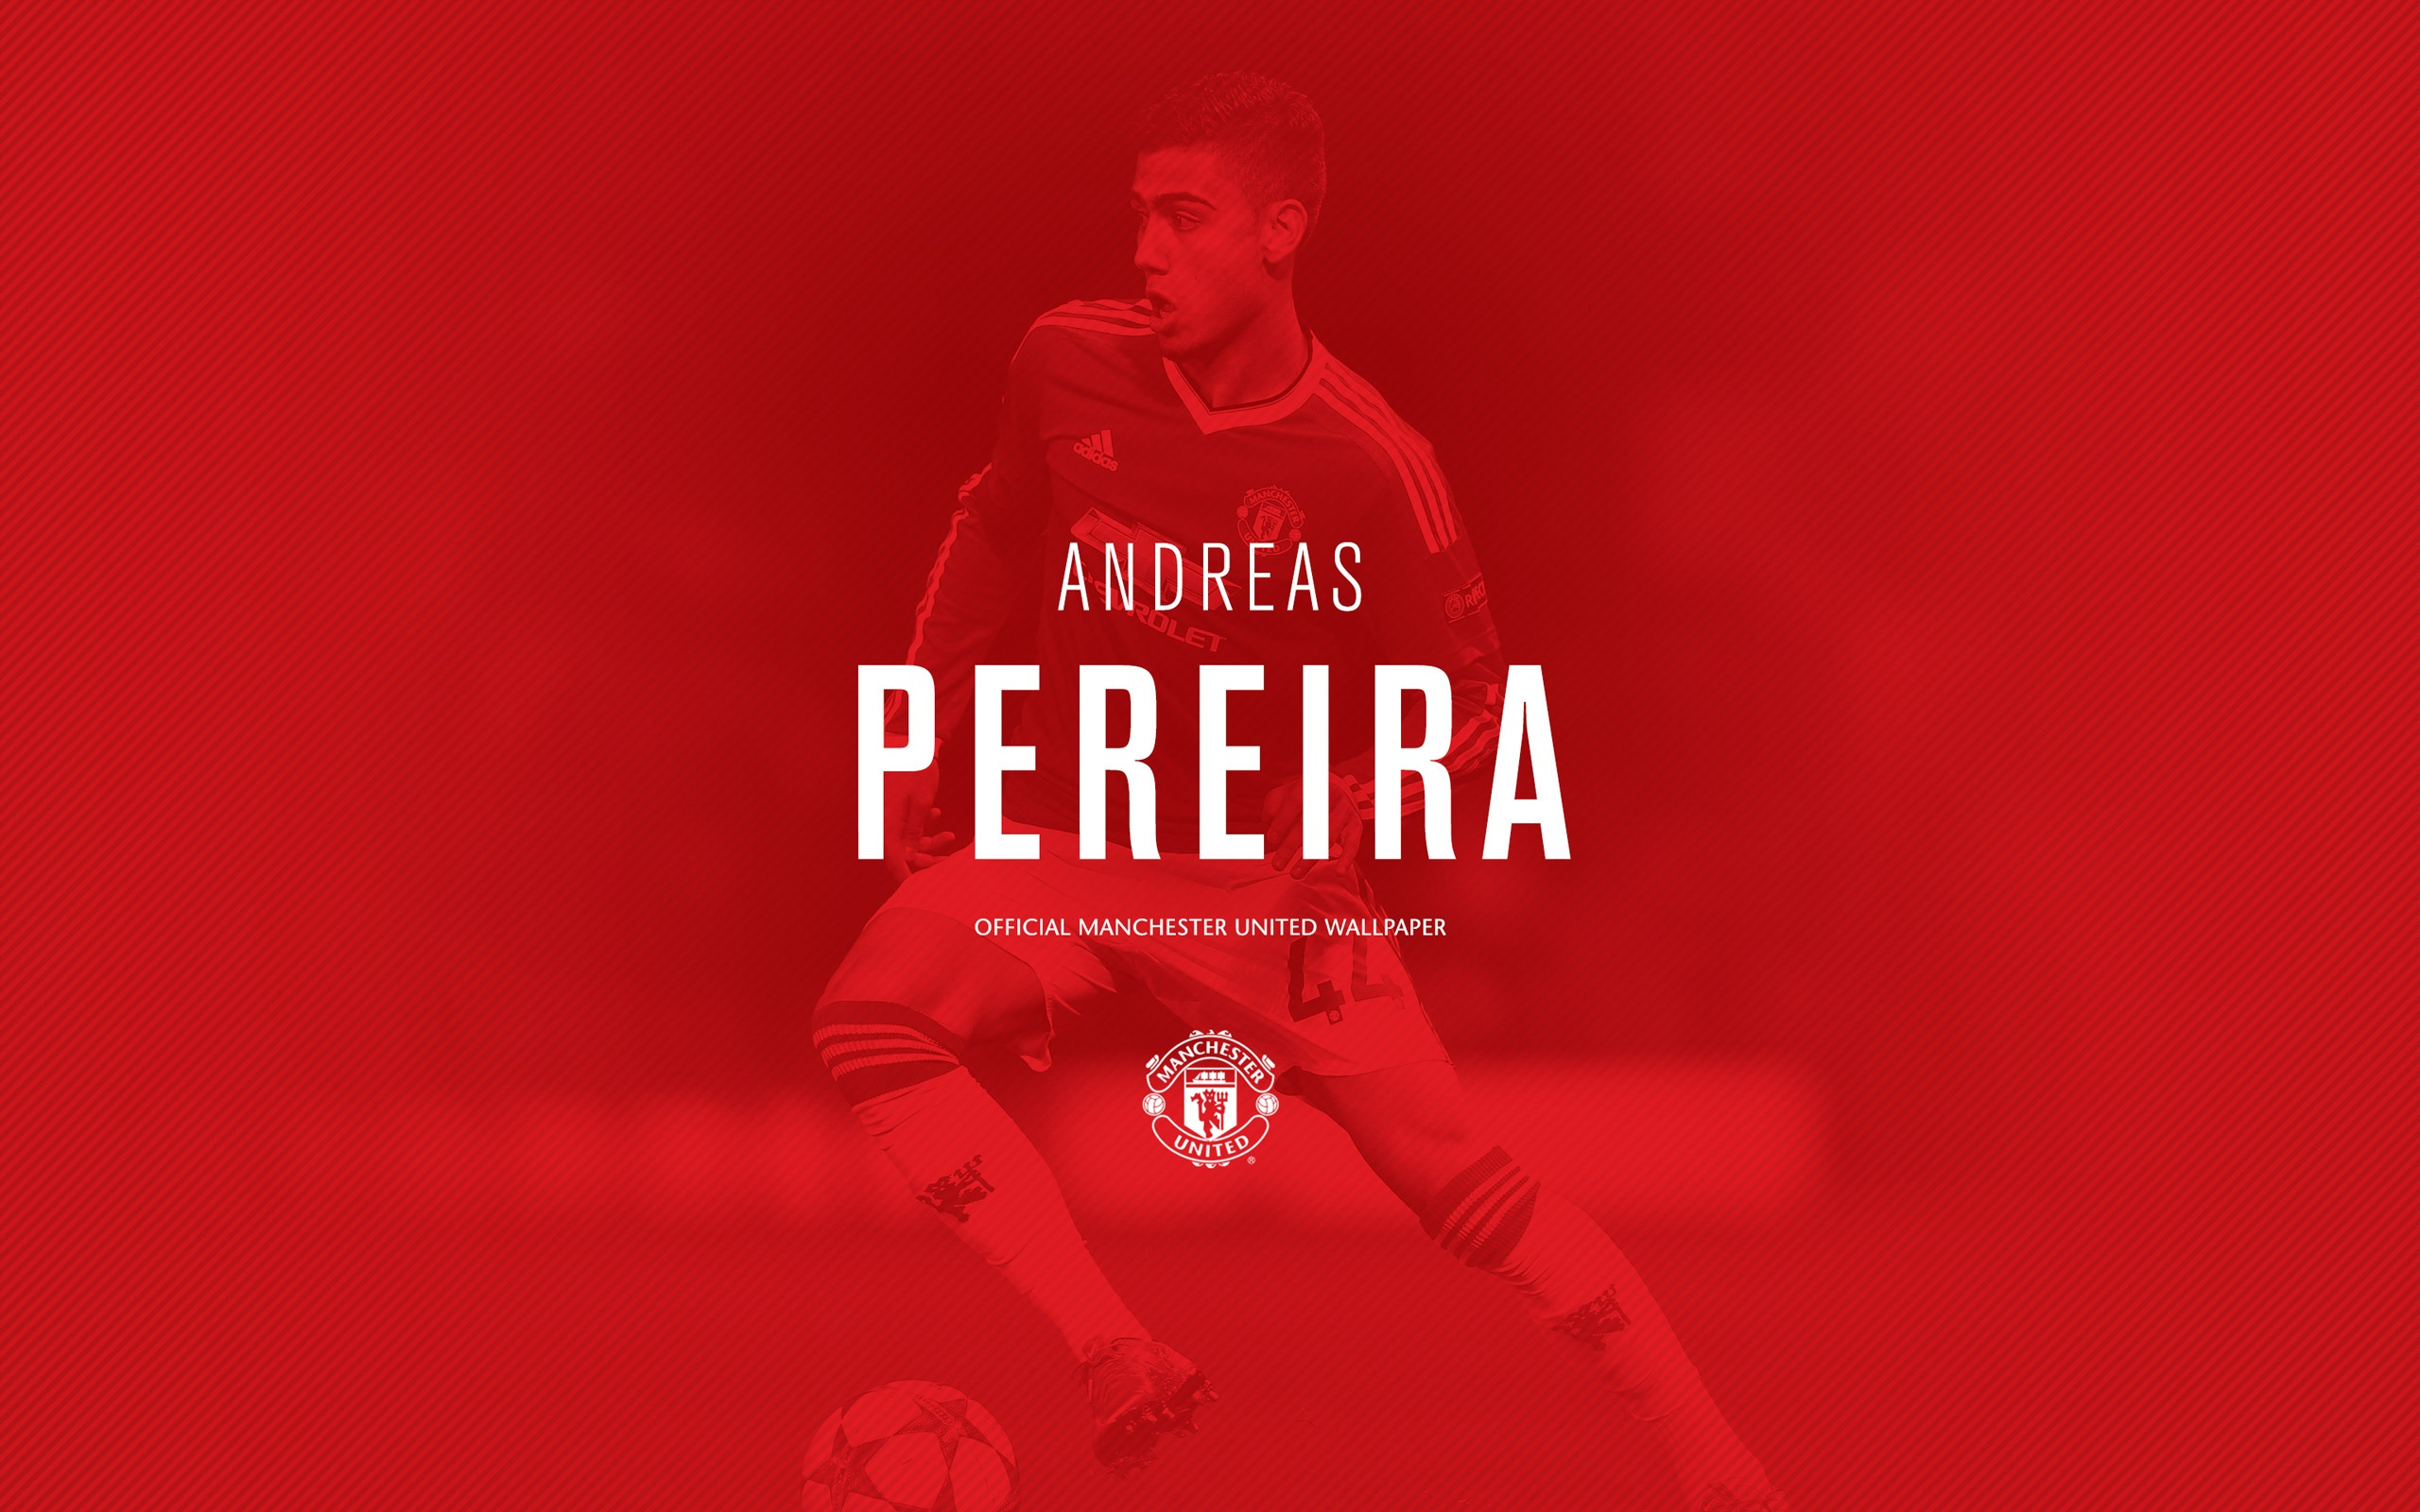 Andreas Pereira 2016 Manchester United Hd Wallpaper Preview